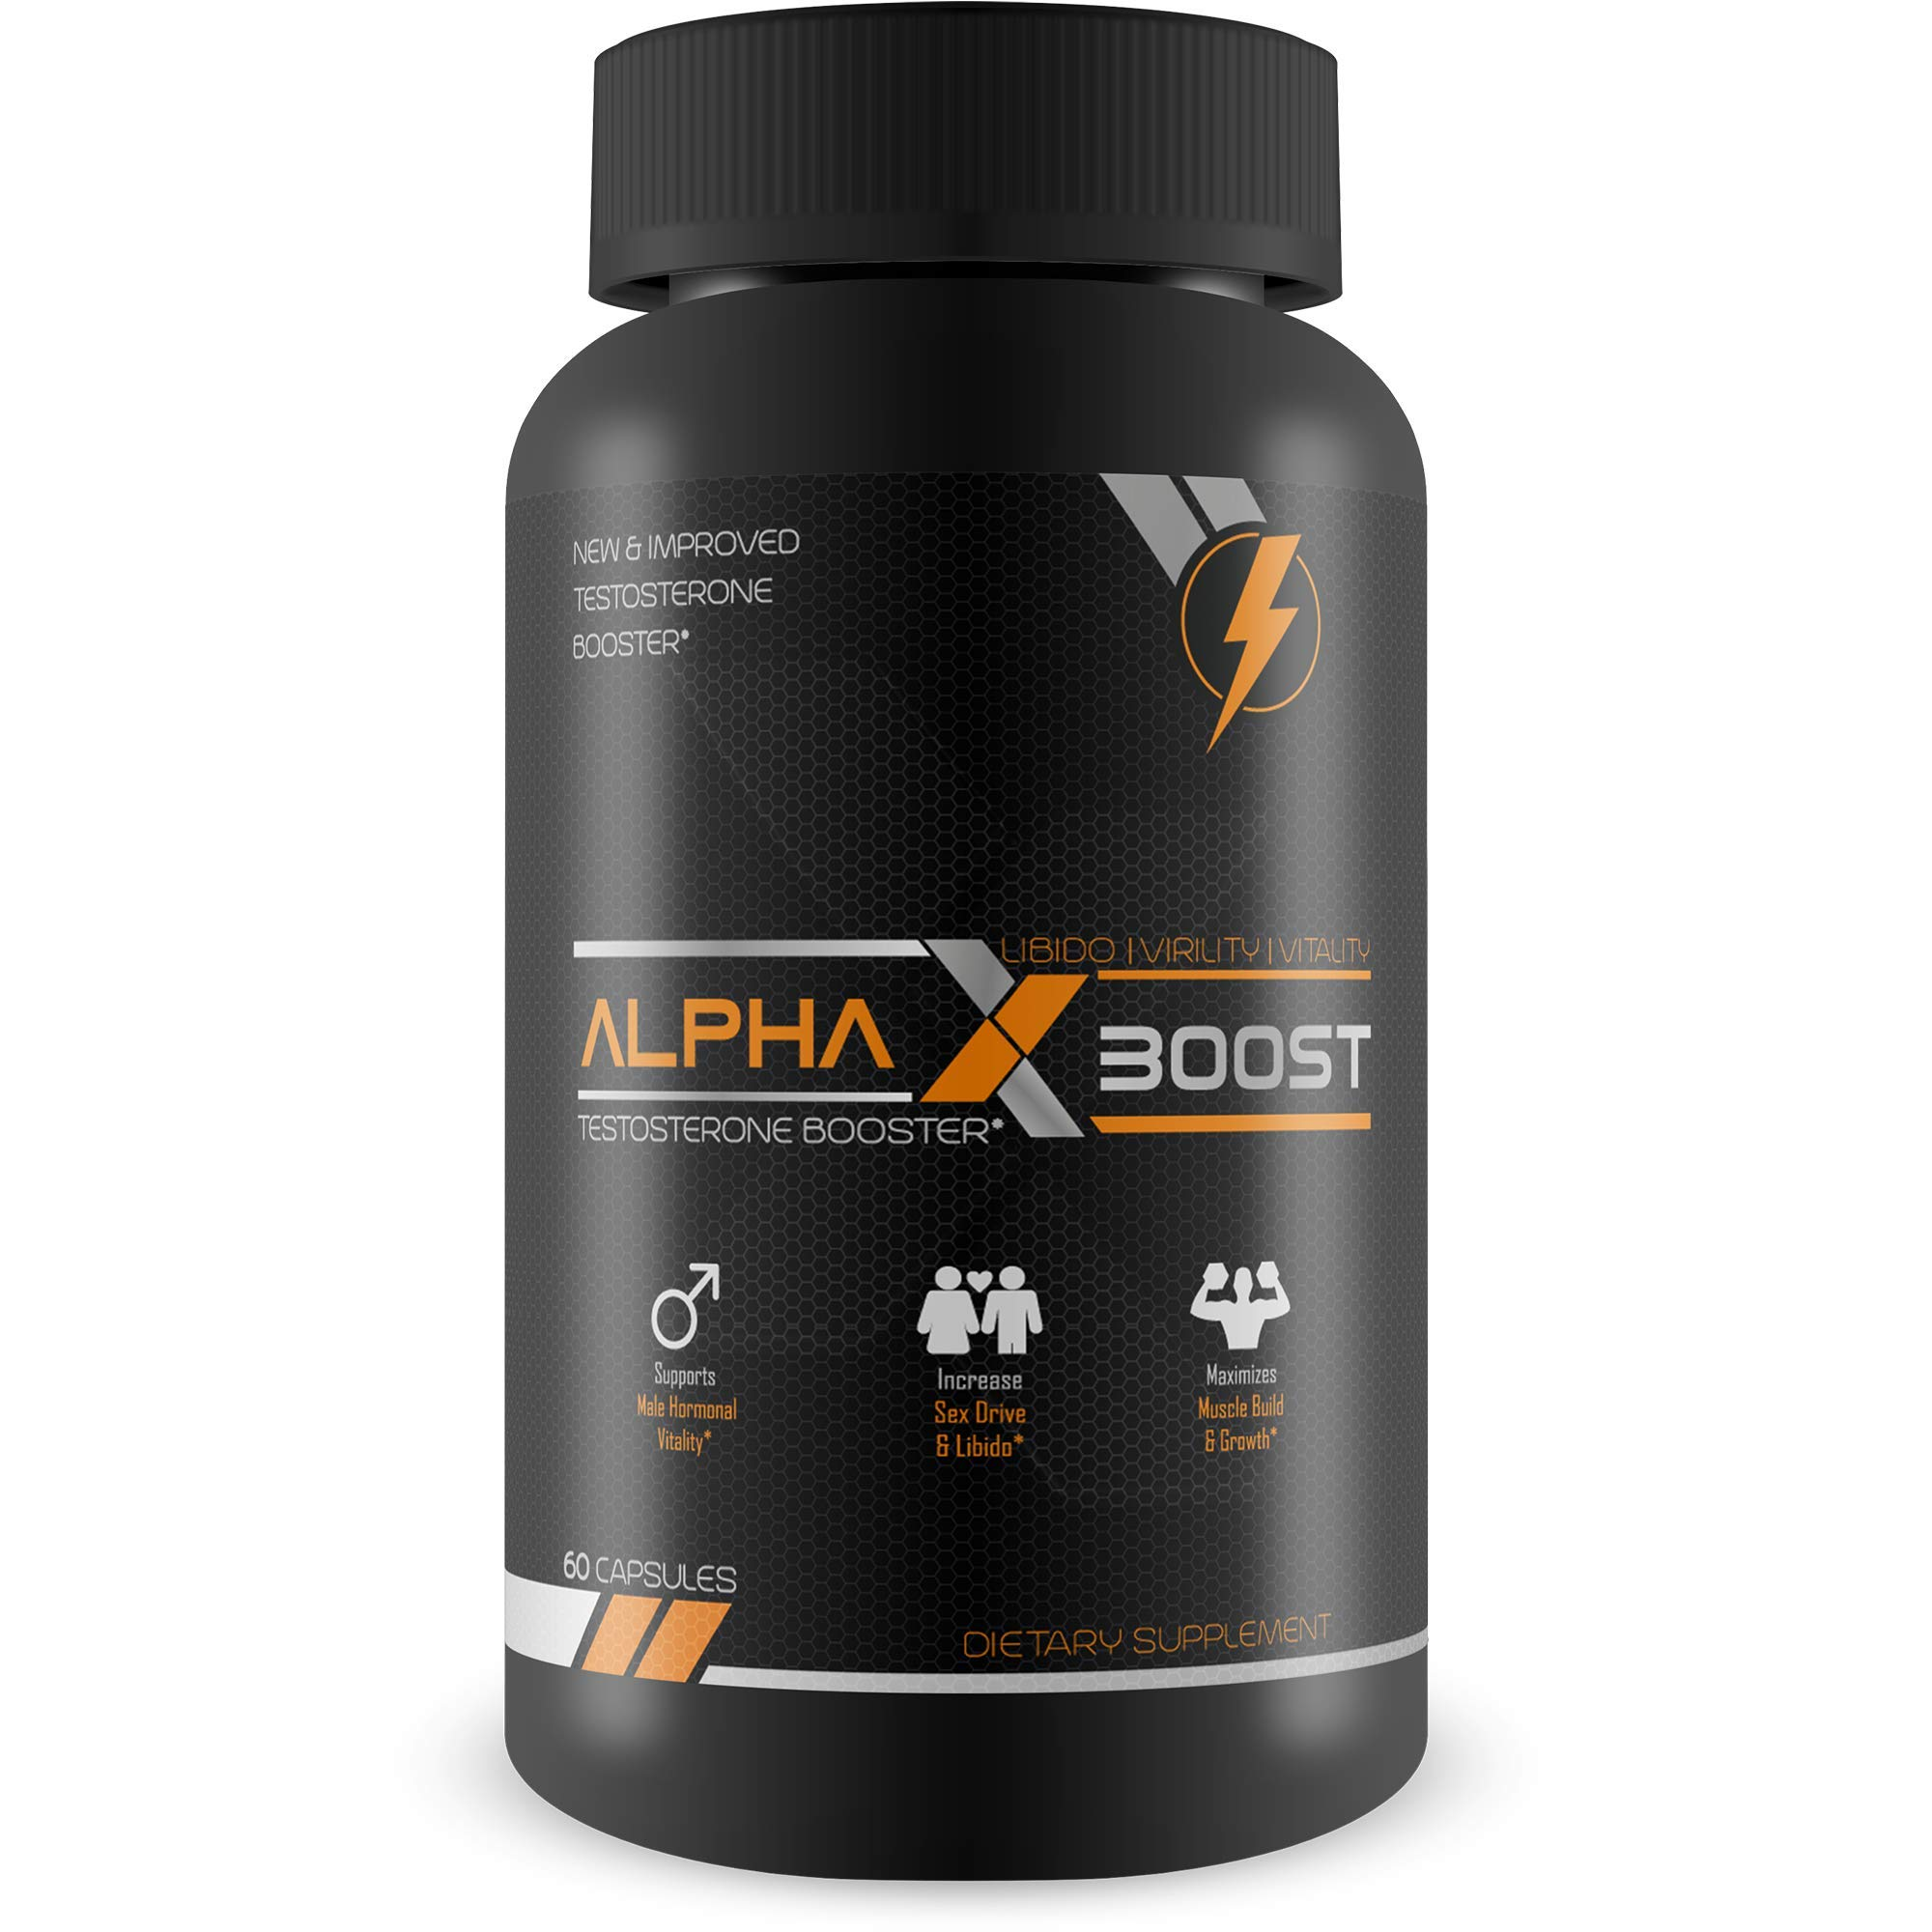 Amazon.com: Alpha X Boost- Optimum Performance Technology- Natural Testosterone Booster- Replenish Natural Test Levels- Safe and Effective- Build Muscle- ...